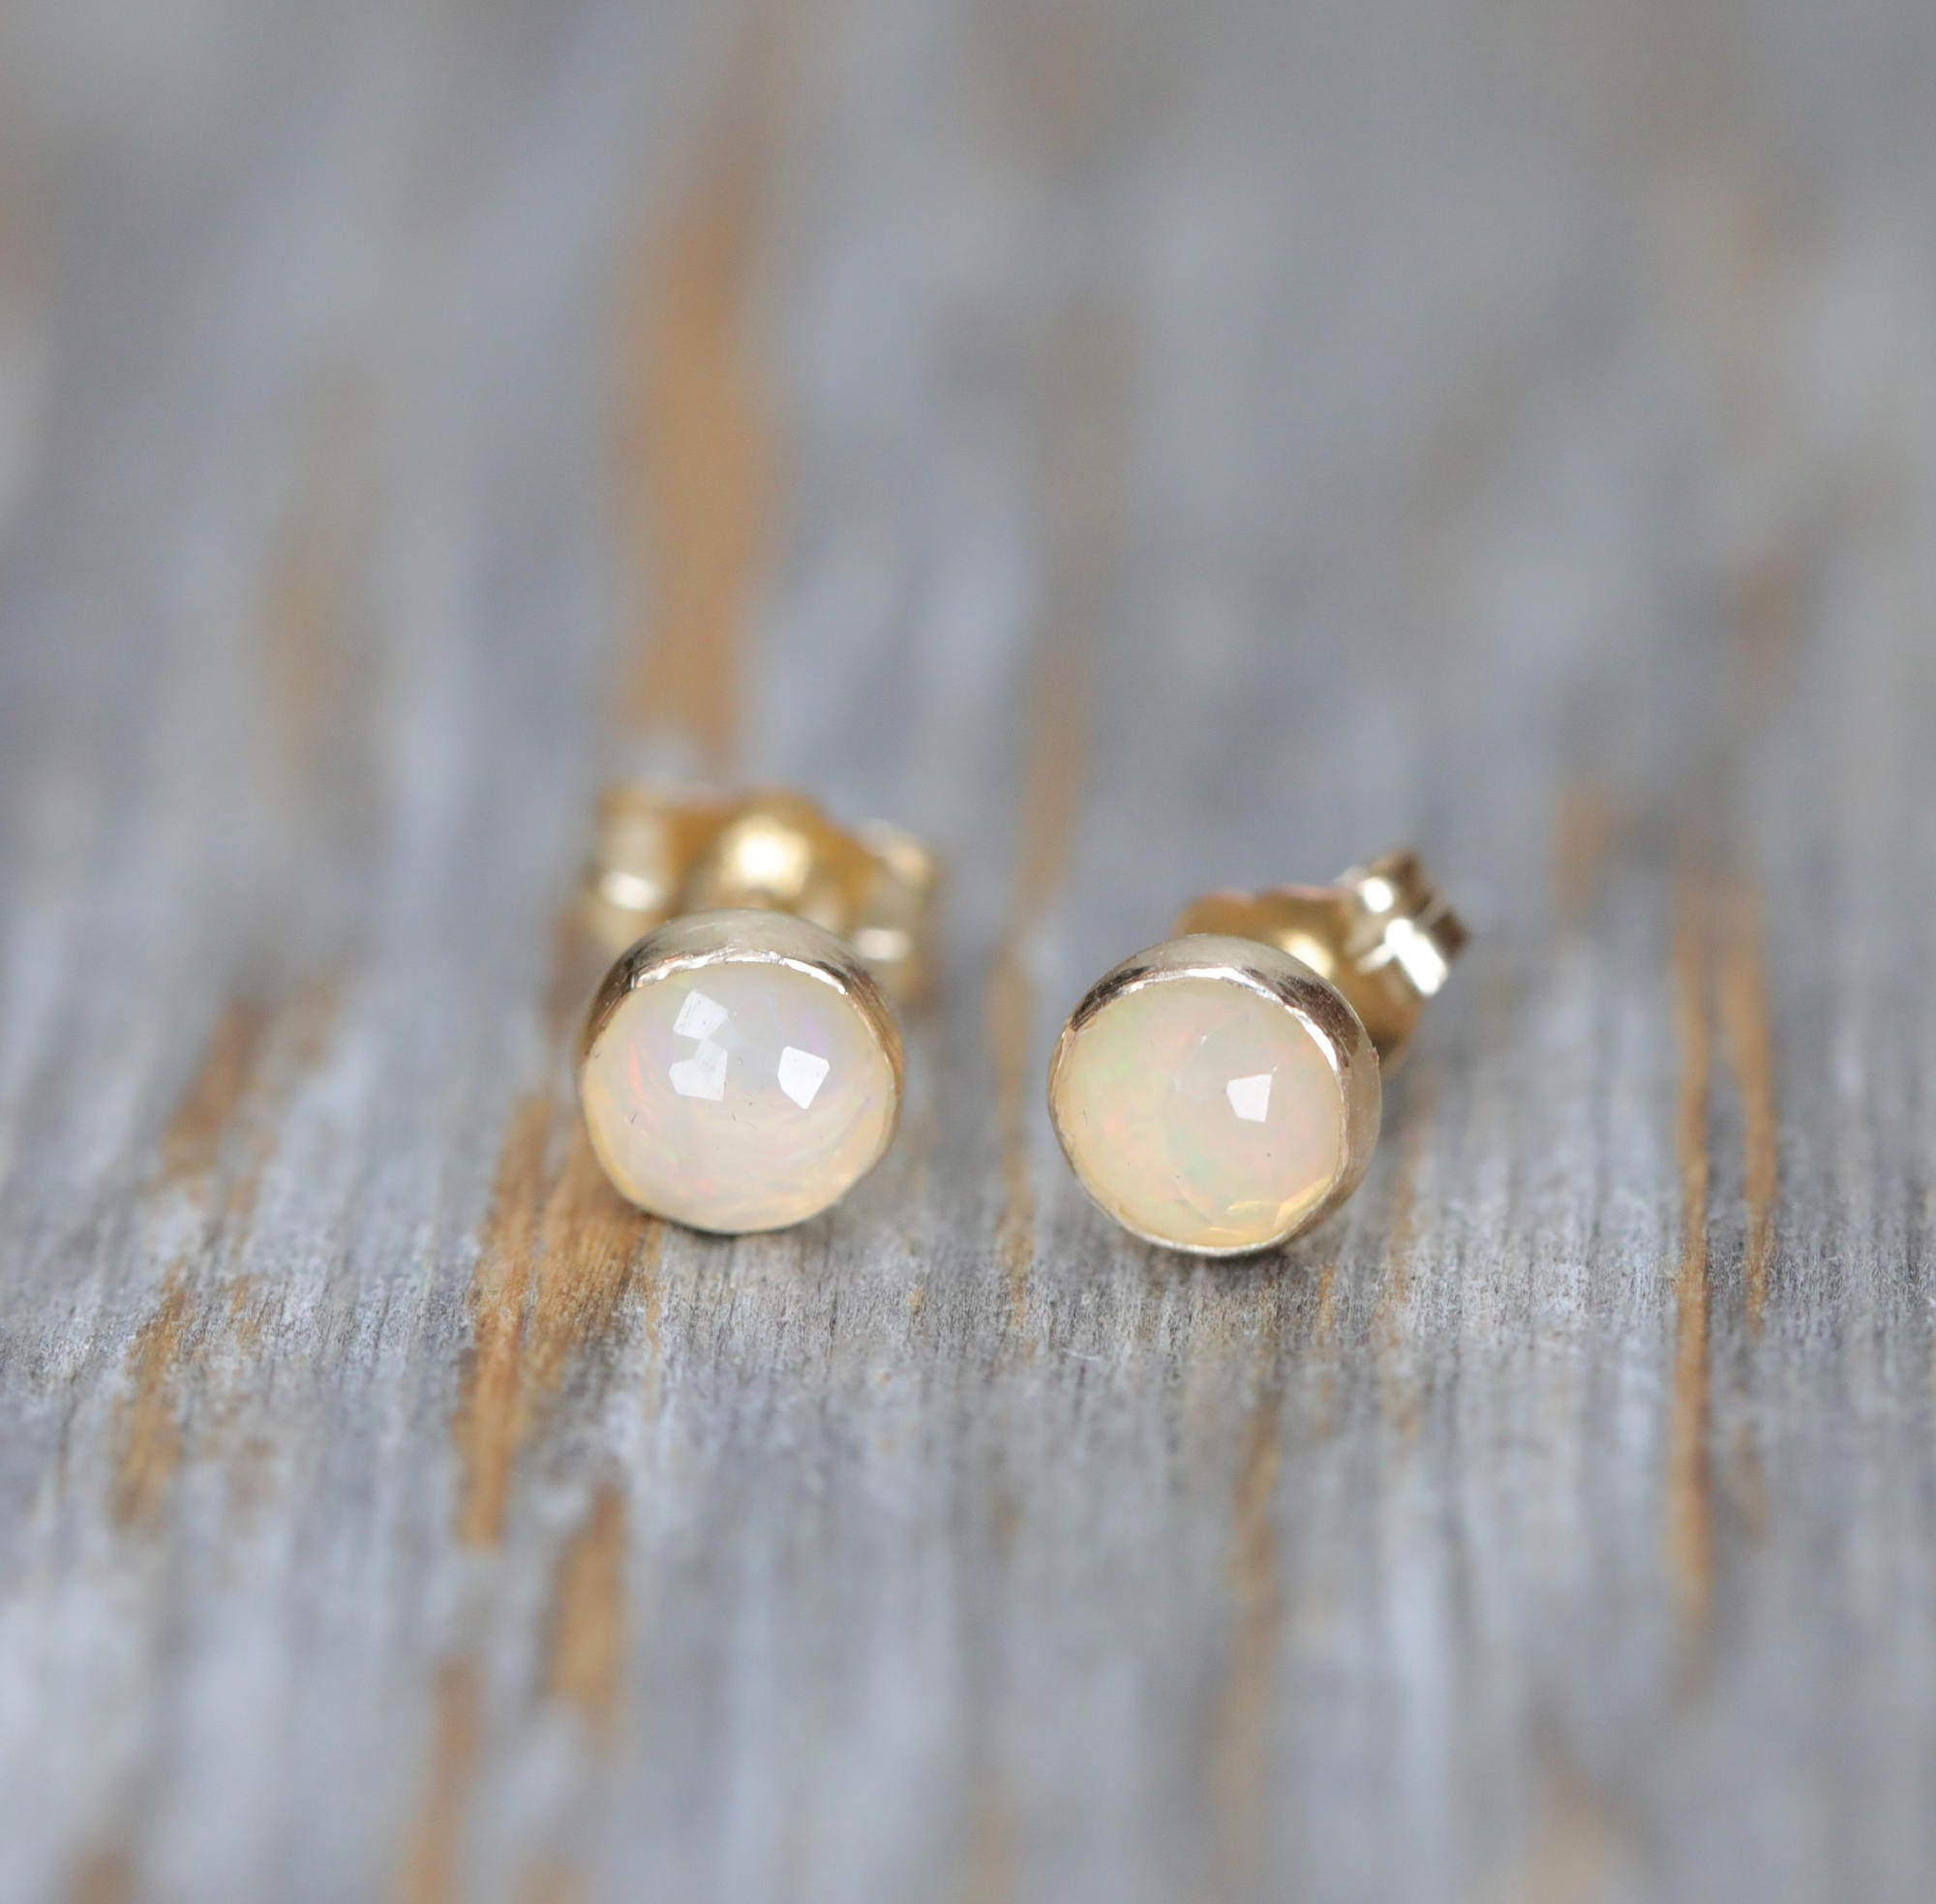 brit stone genuine buys for statement pieces jewelry birth earrings opal co october birthstone